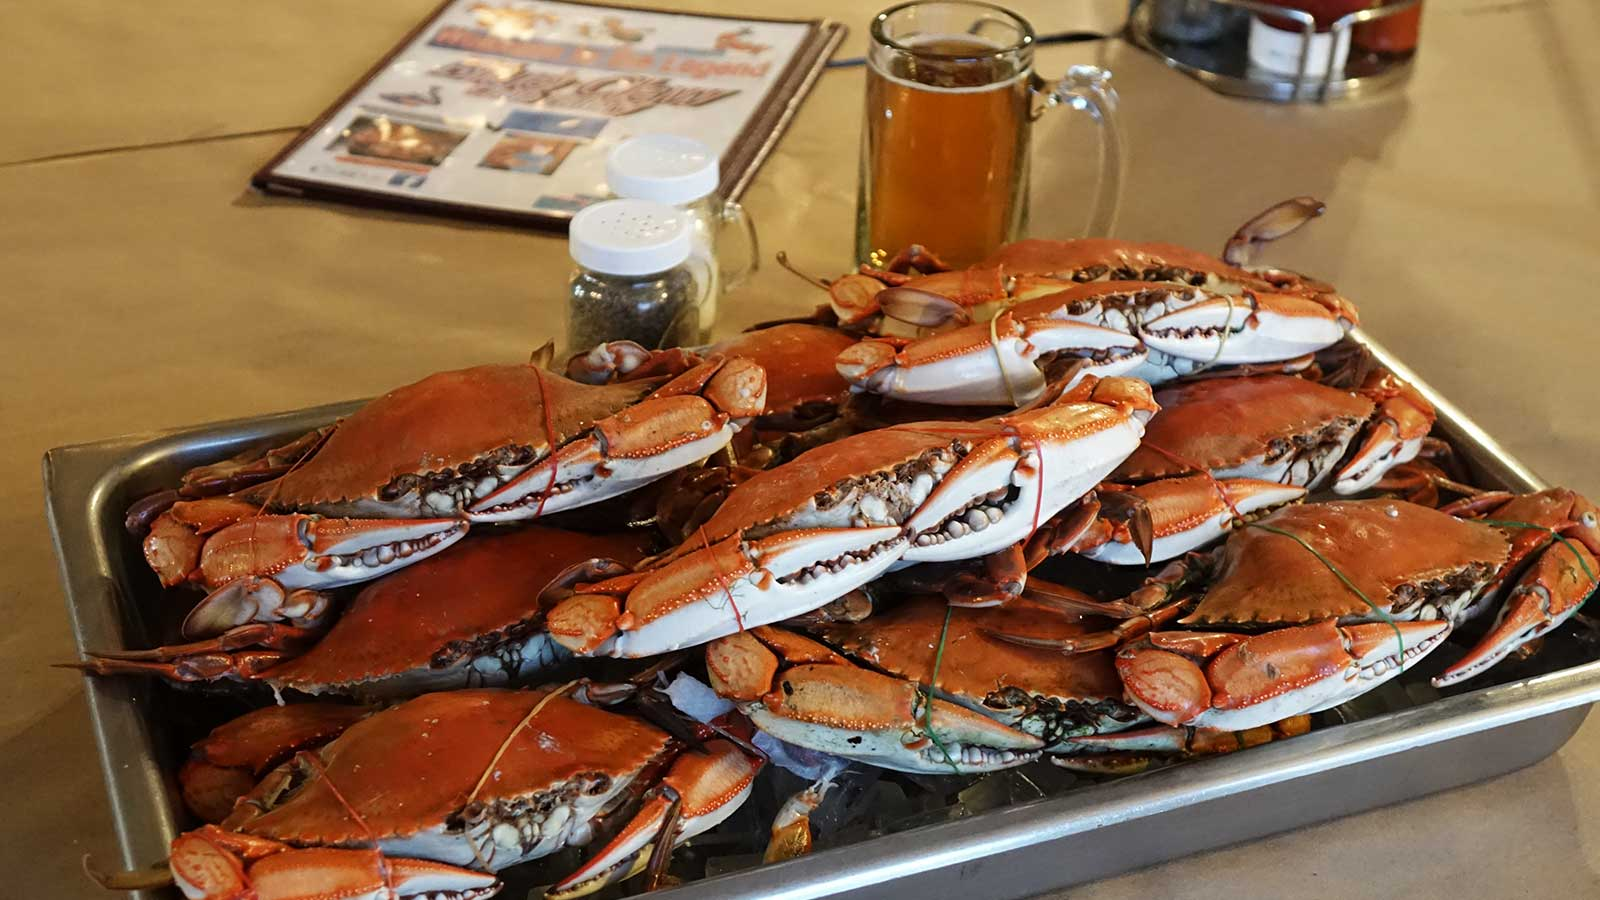 Blue Claw Seafood Crab Eatery Good Food And Friendly Service Is Always Our Top Priority